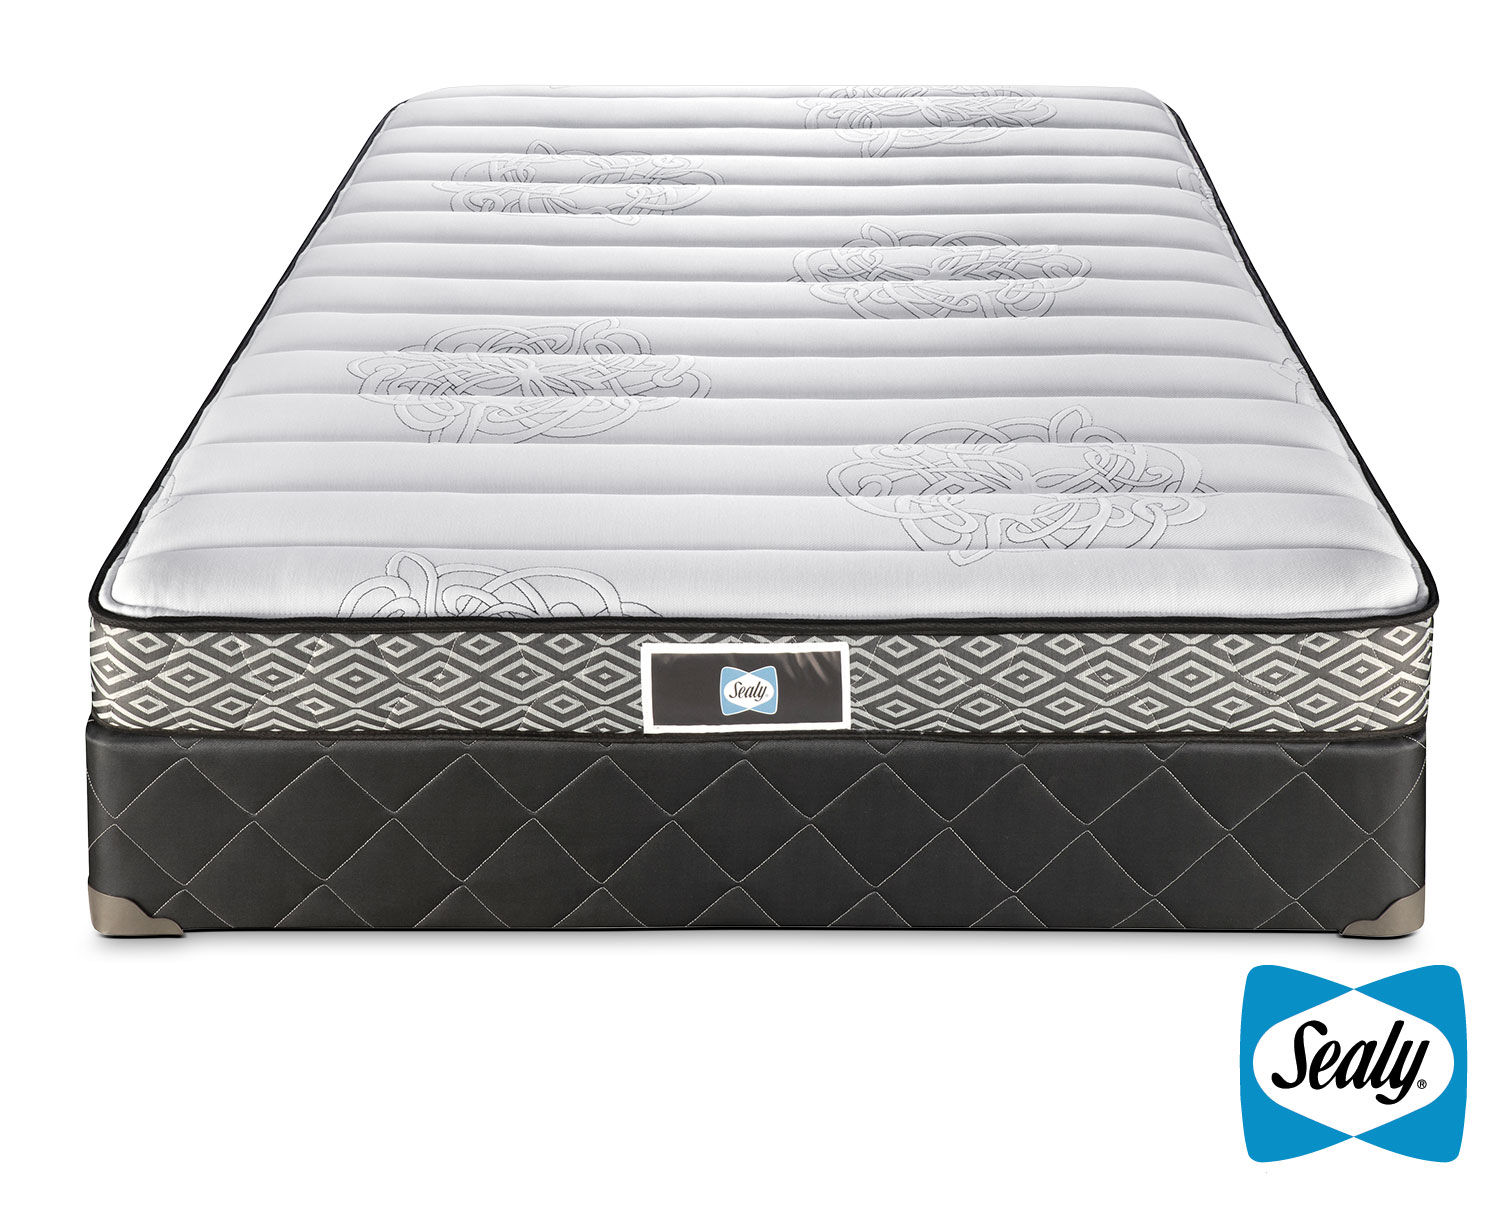 Sealy Glacier Firm Full Mattress and Boxspring Set